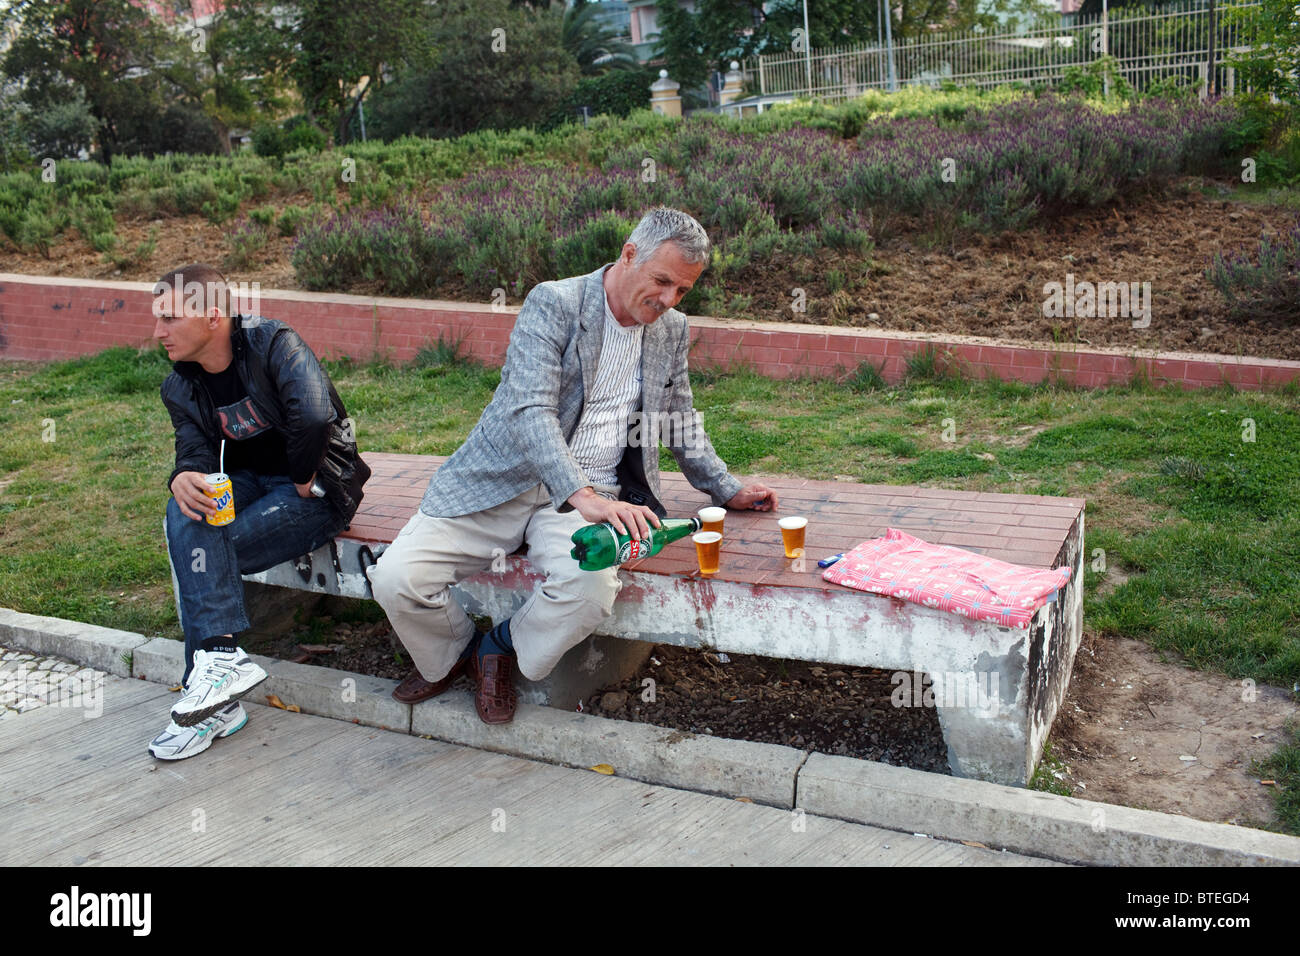 A man pours beer in a park in Tirana, the capital of Albania. - Stock Image